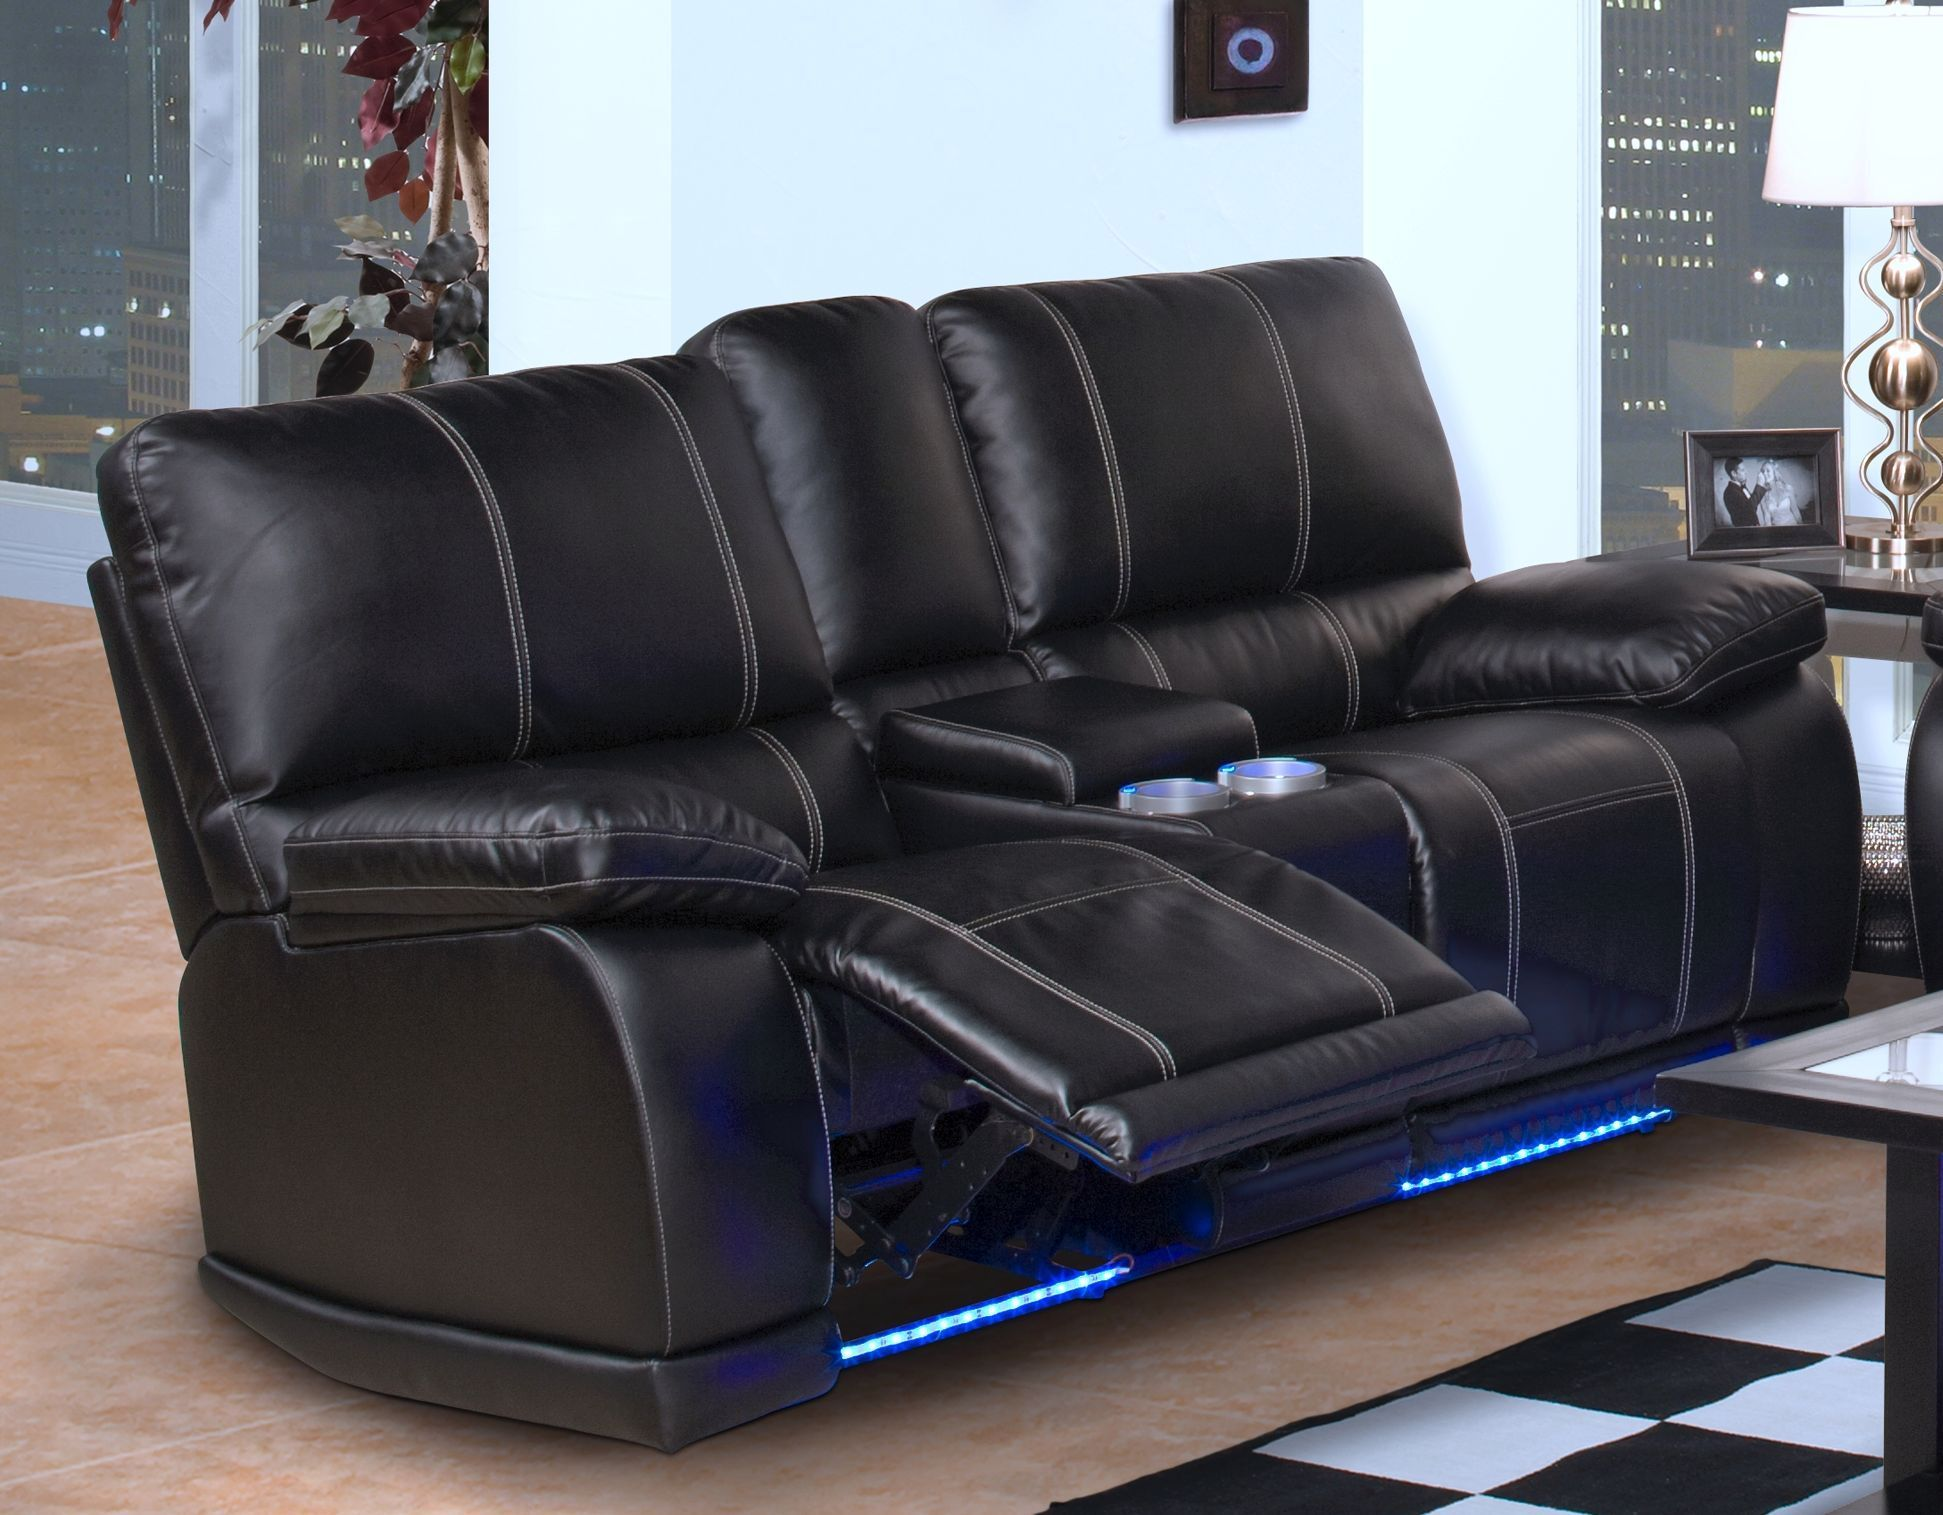 - Black Leather Electric Recliner Sofa #homedecor In 2020 Leather